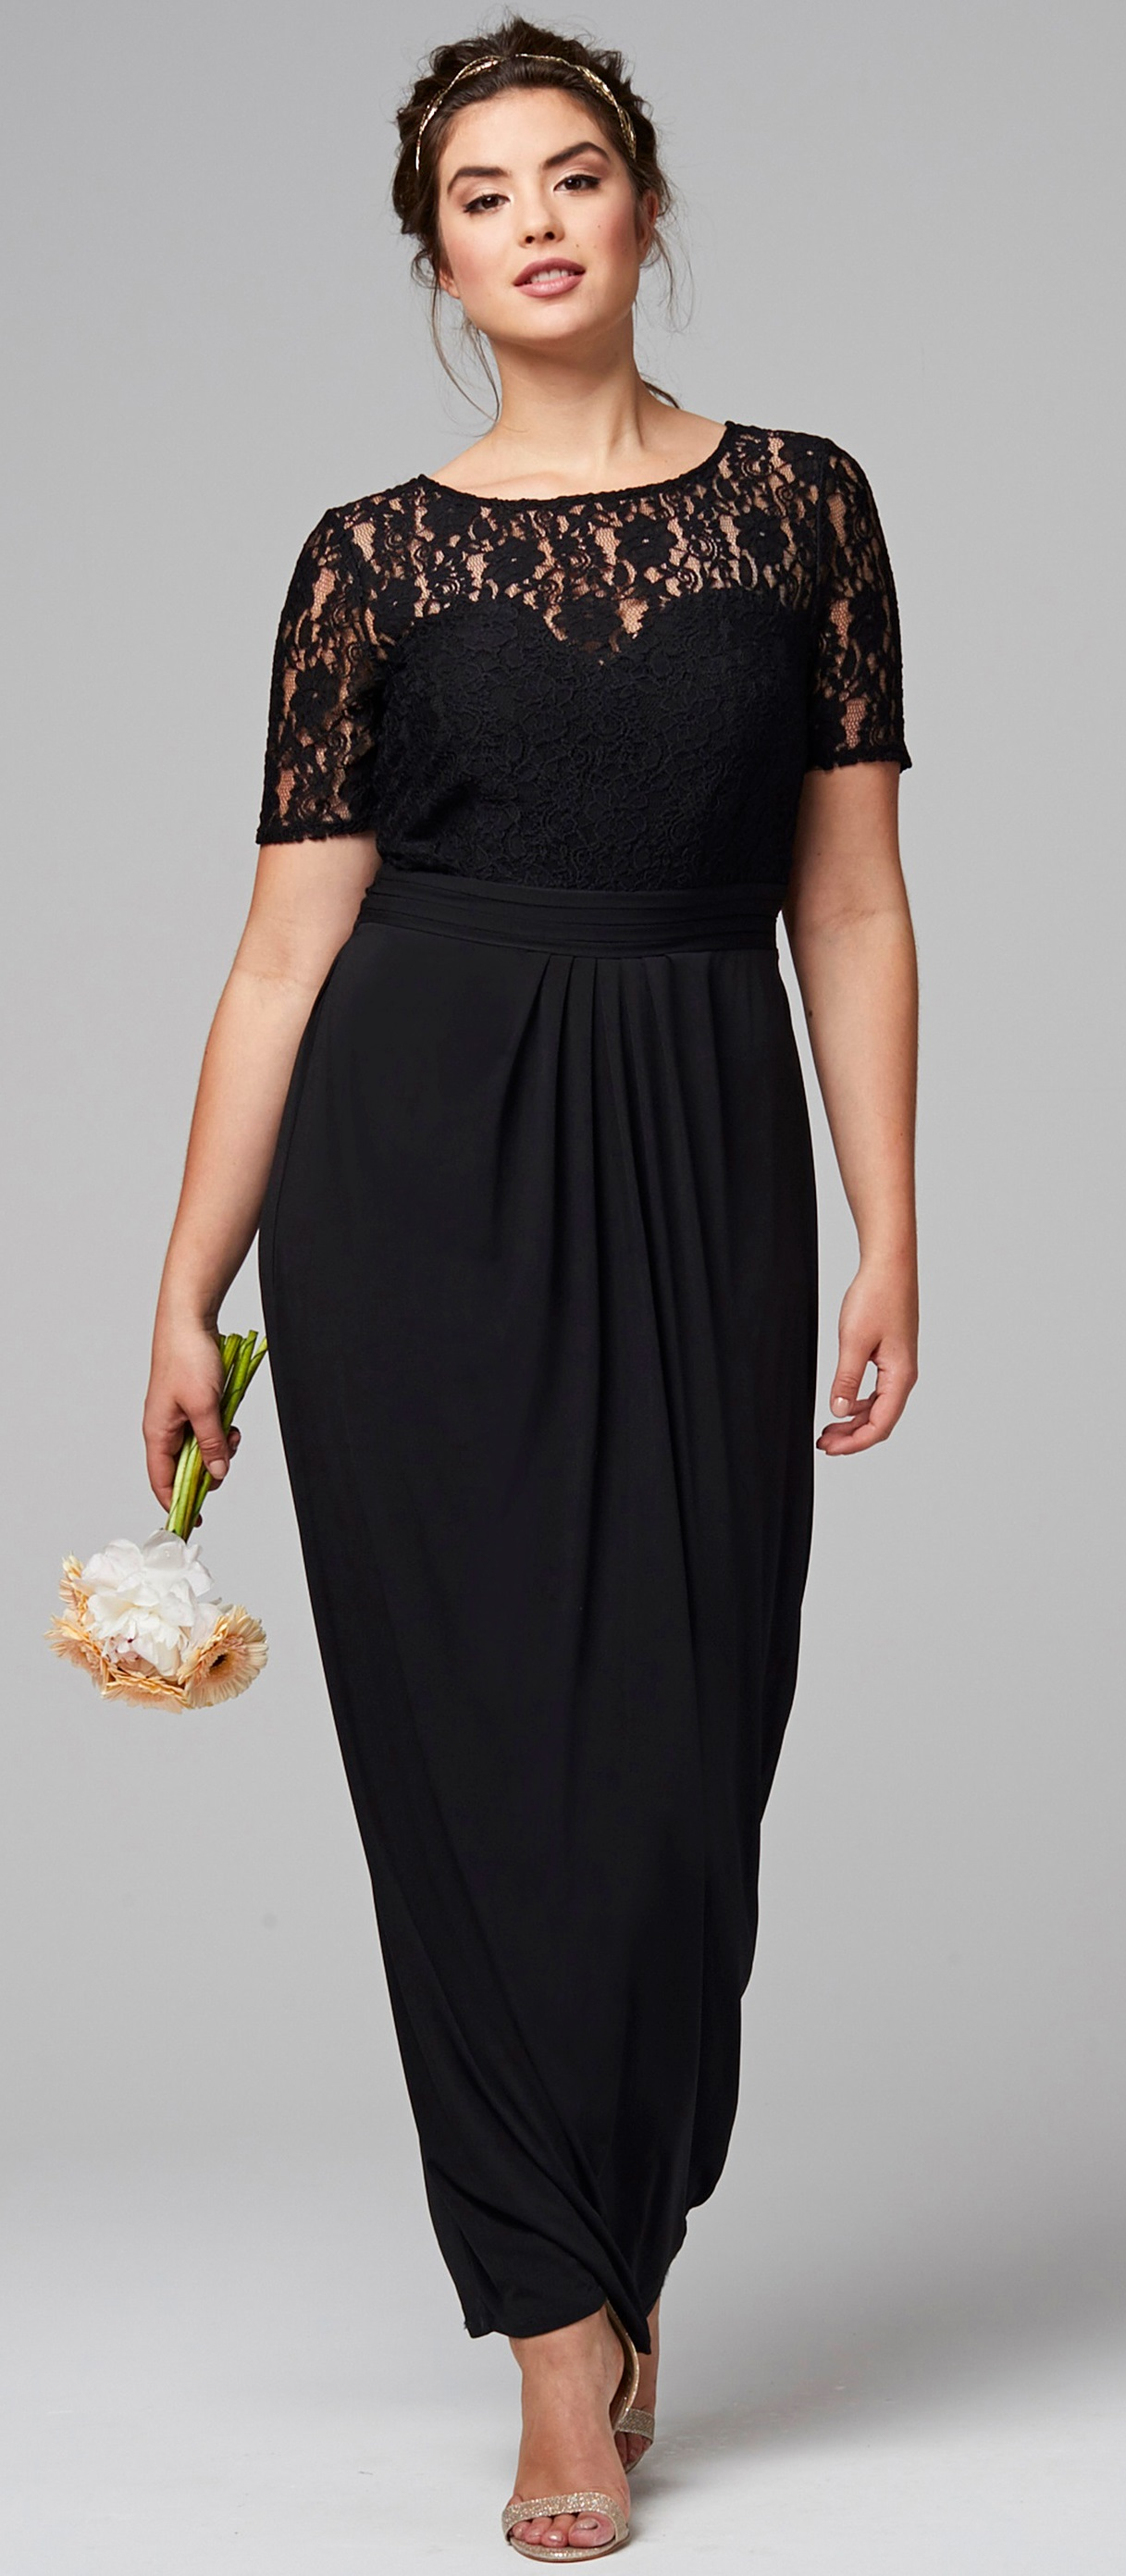 Charmant 45 Plus Size Wedding Guest Dresses {with Sleeves}   Plus Size Cocktail  Dresses